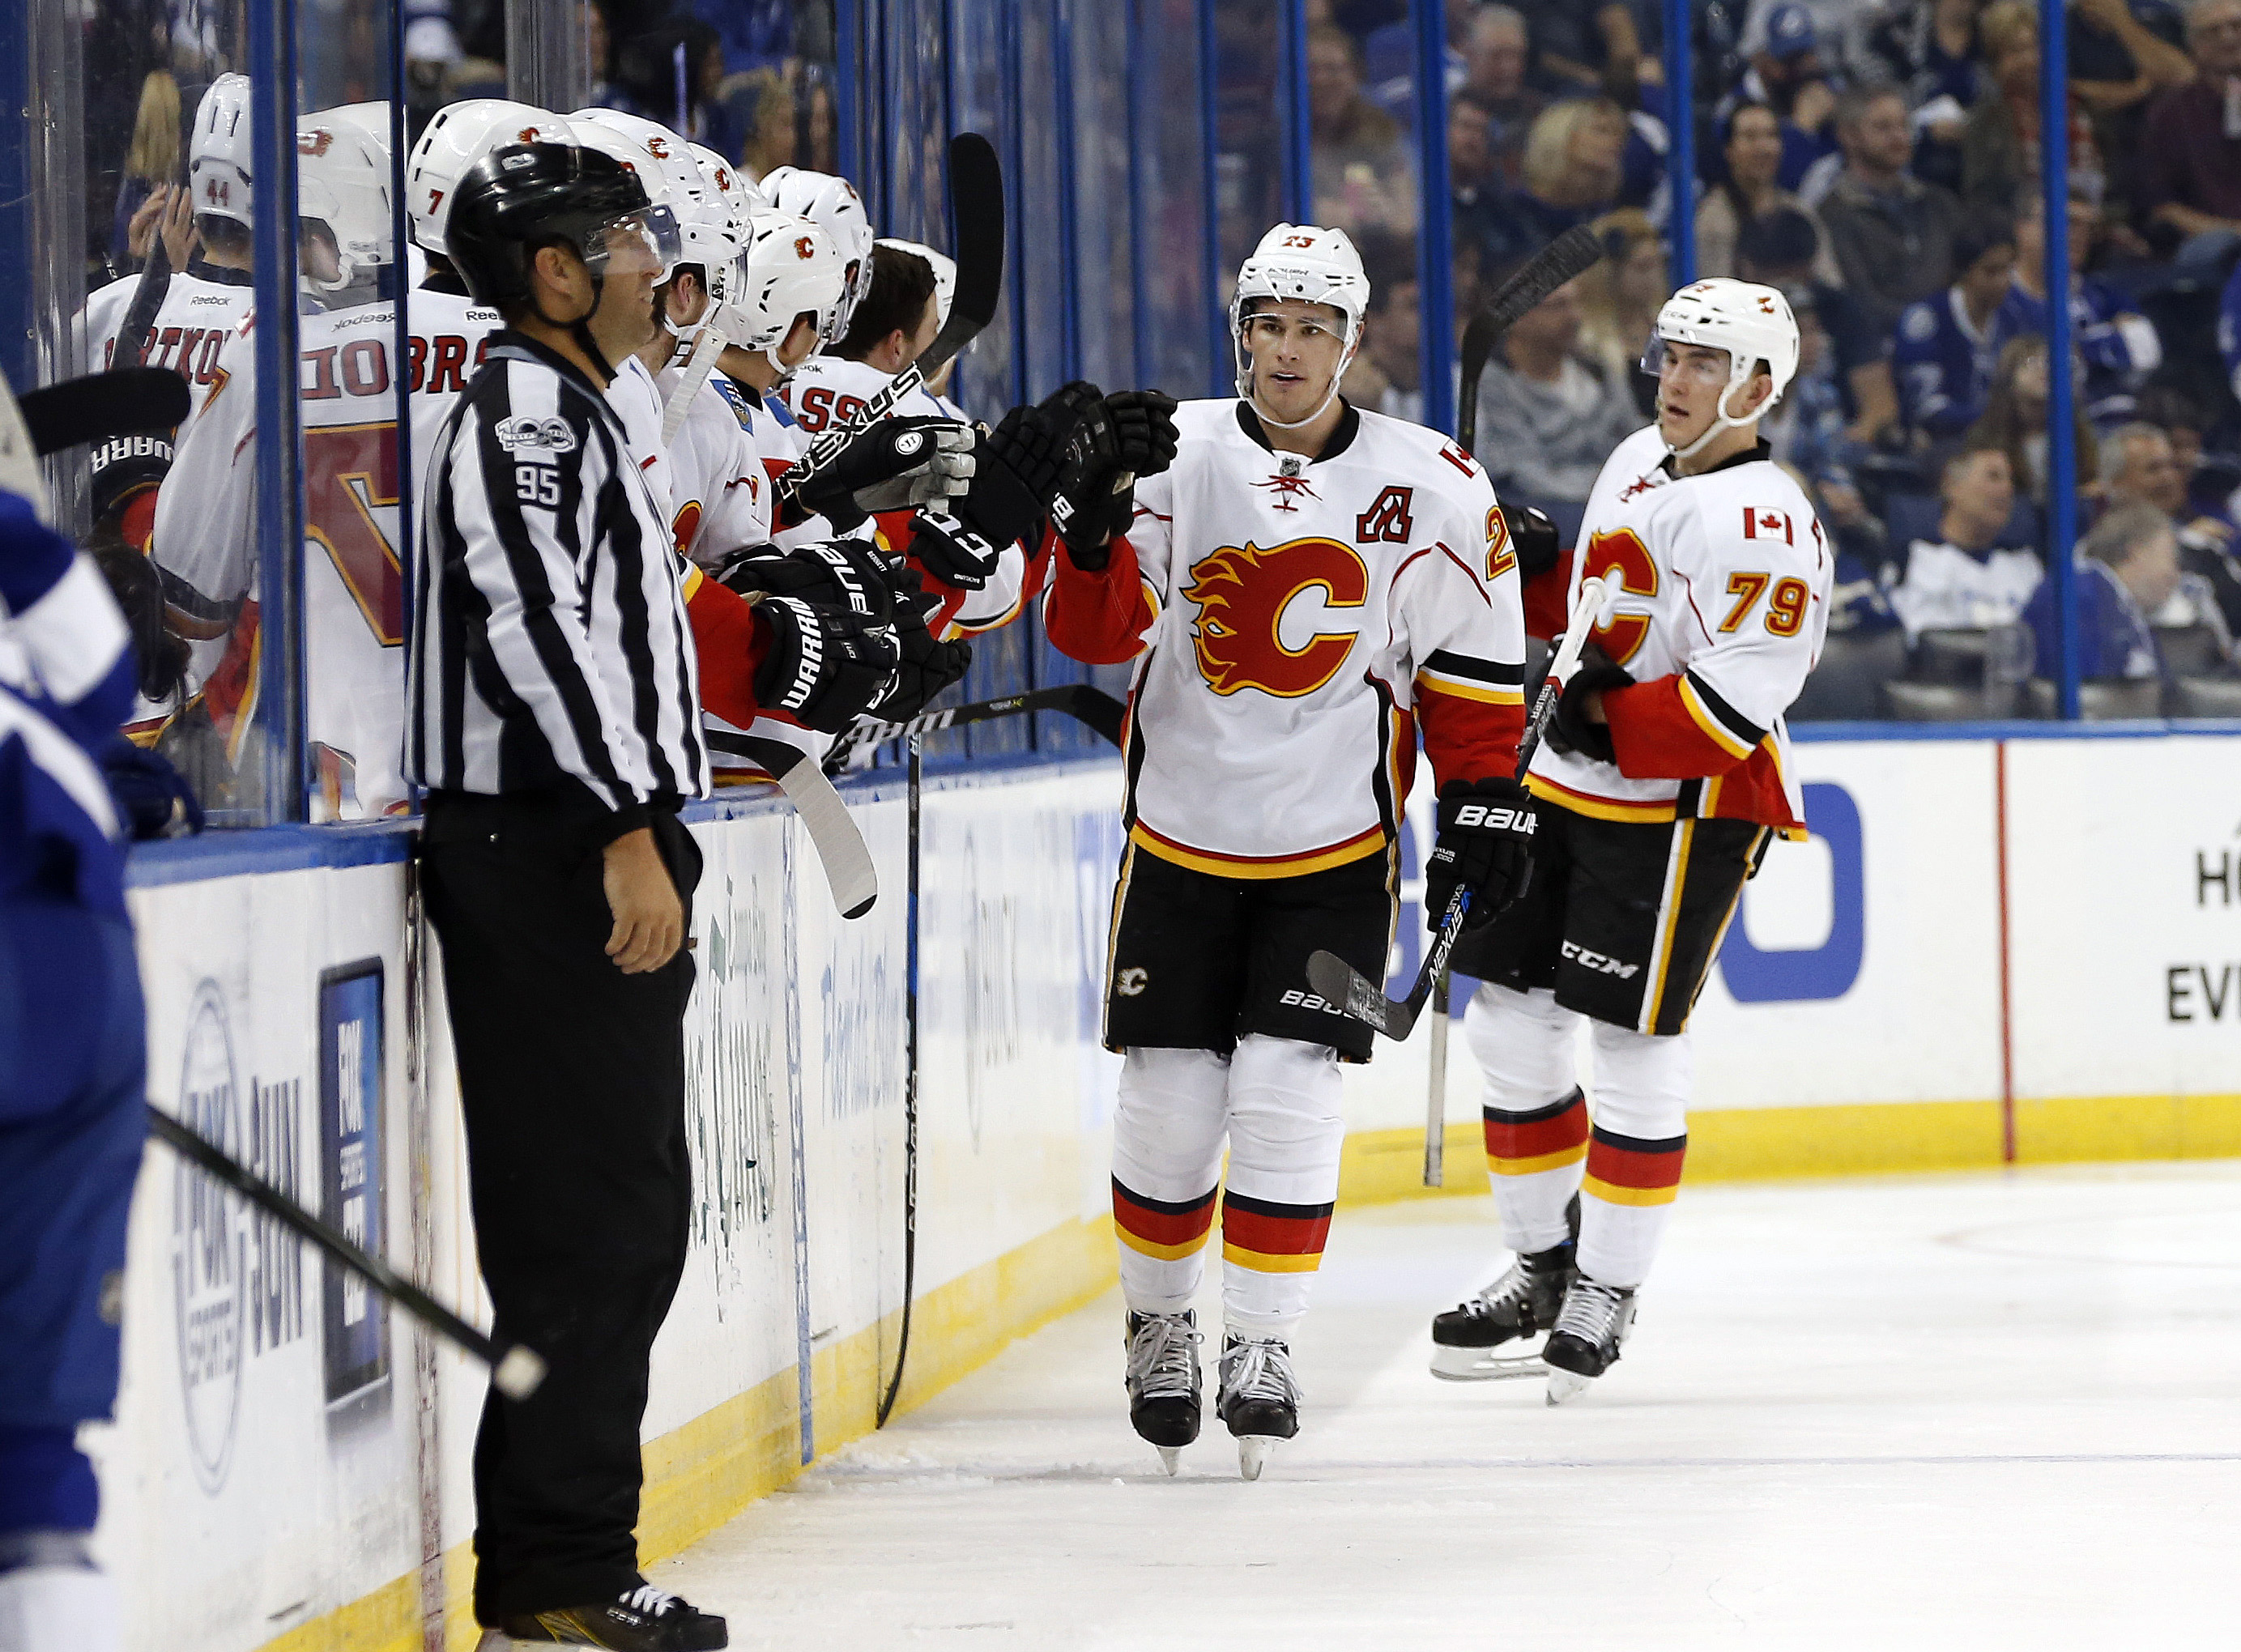 9896319-nhl-calgary-flames-at-tampa-bay-lightning